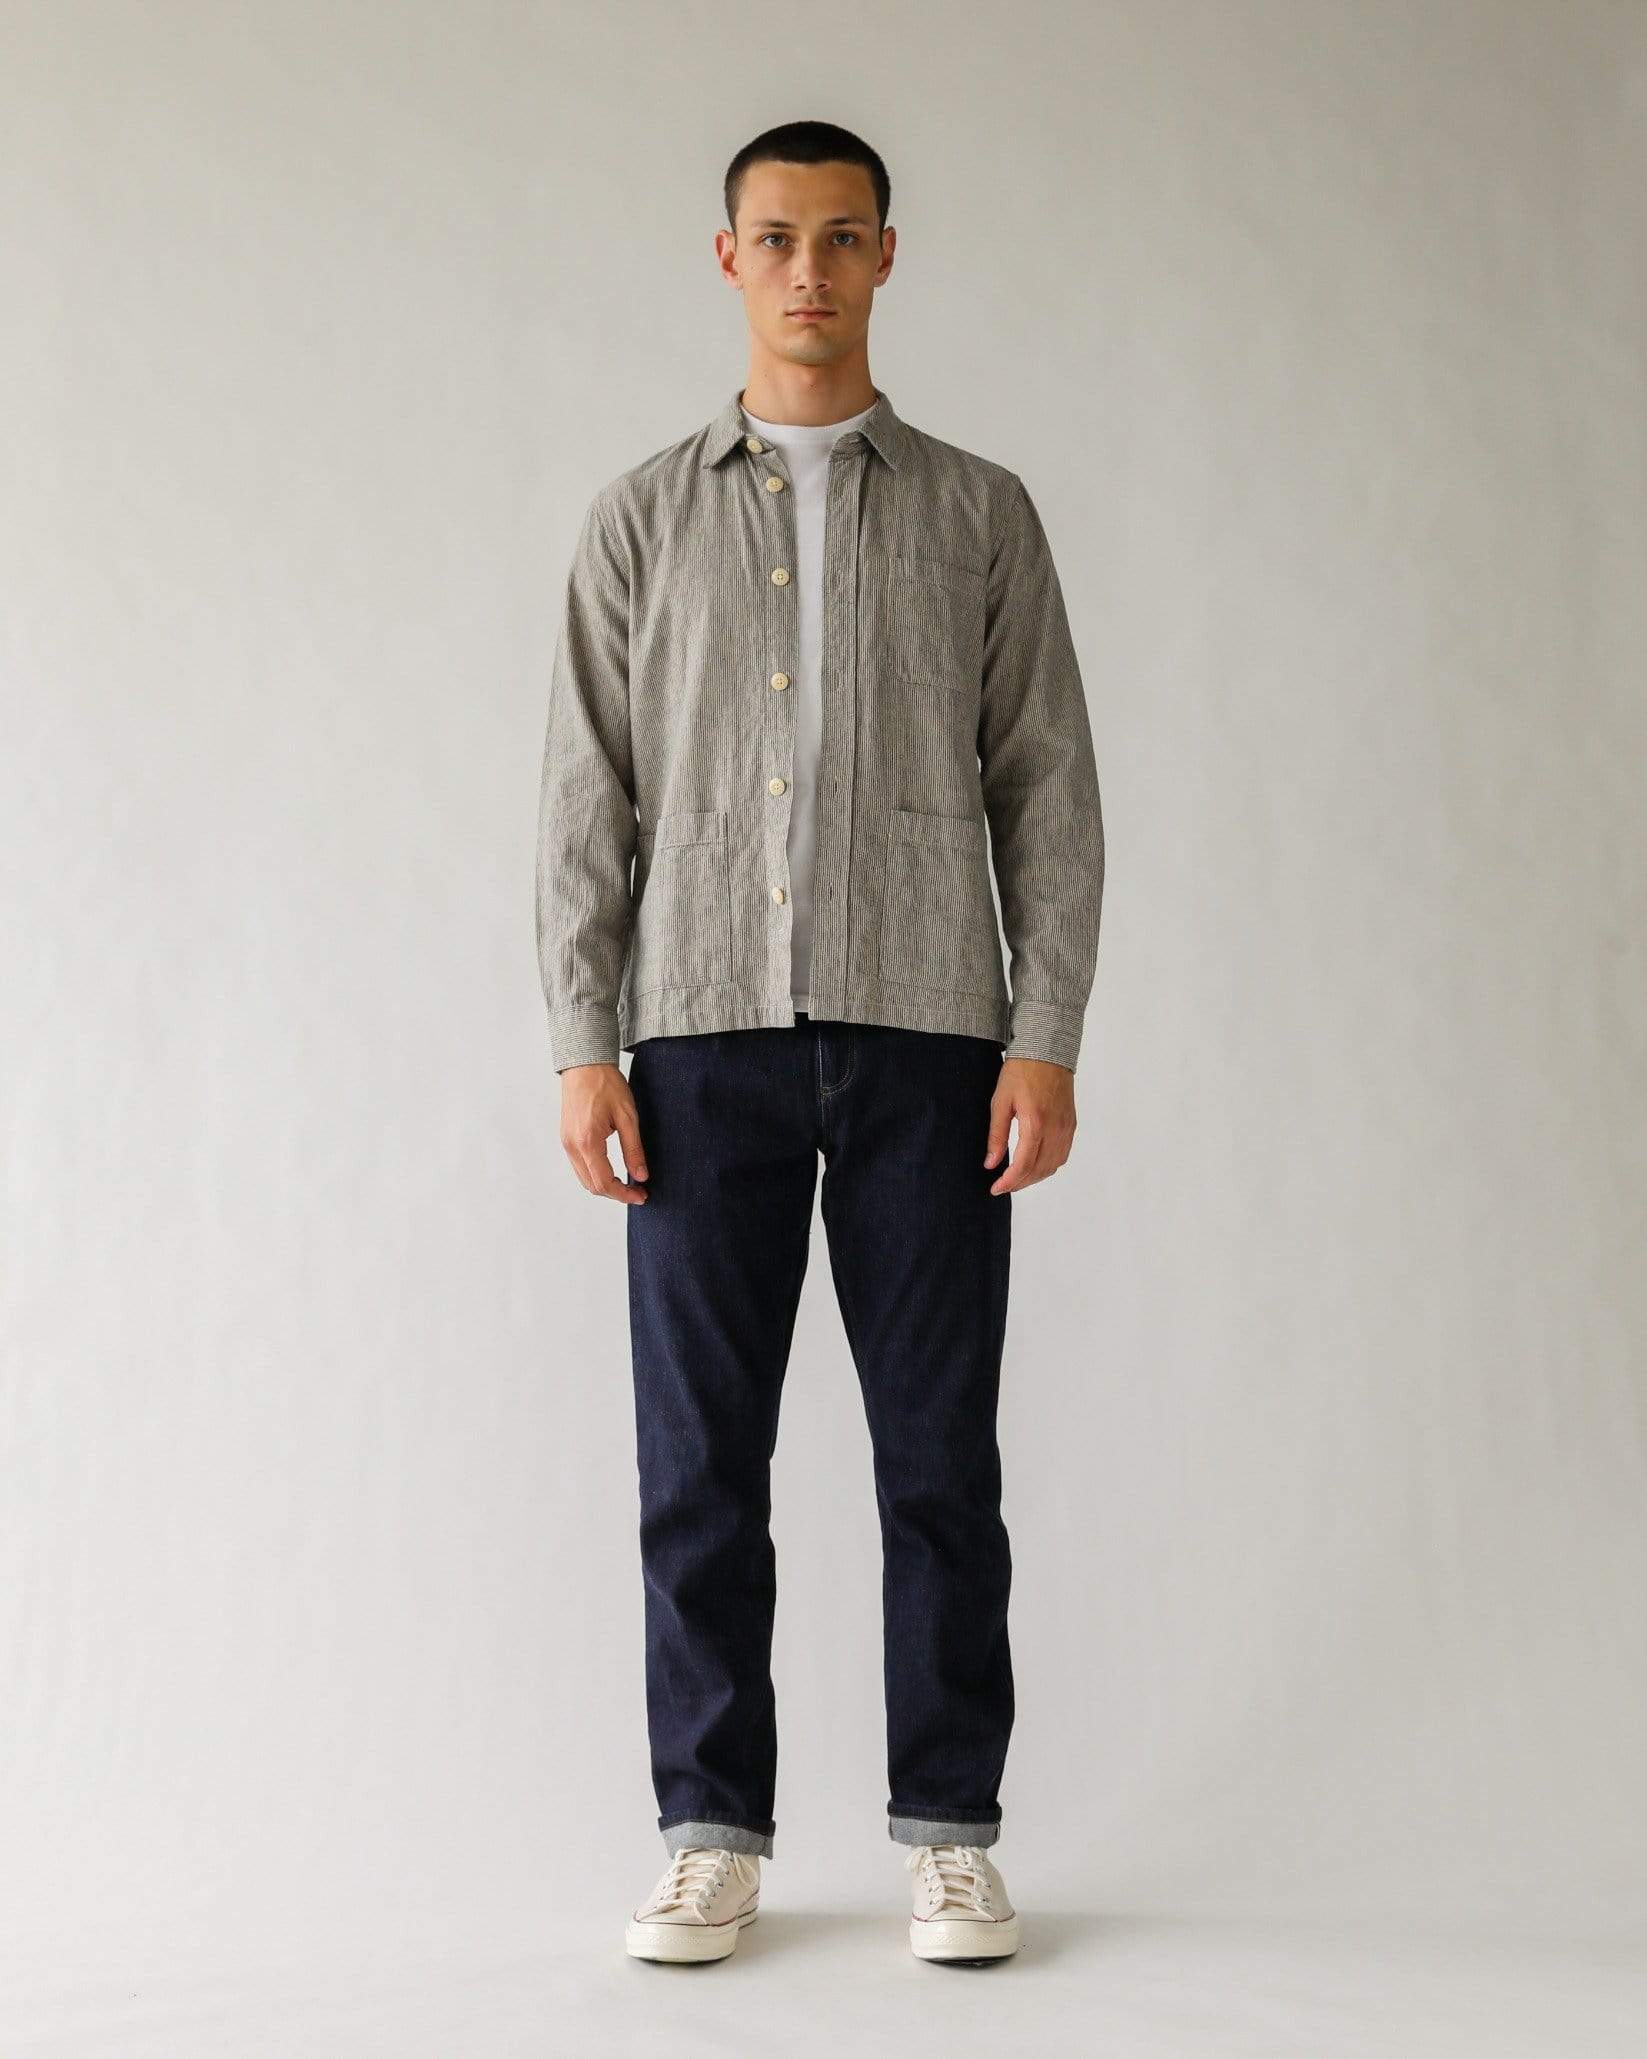 Ticking Stripe Linen Overshirt - Natural